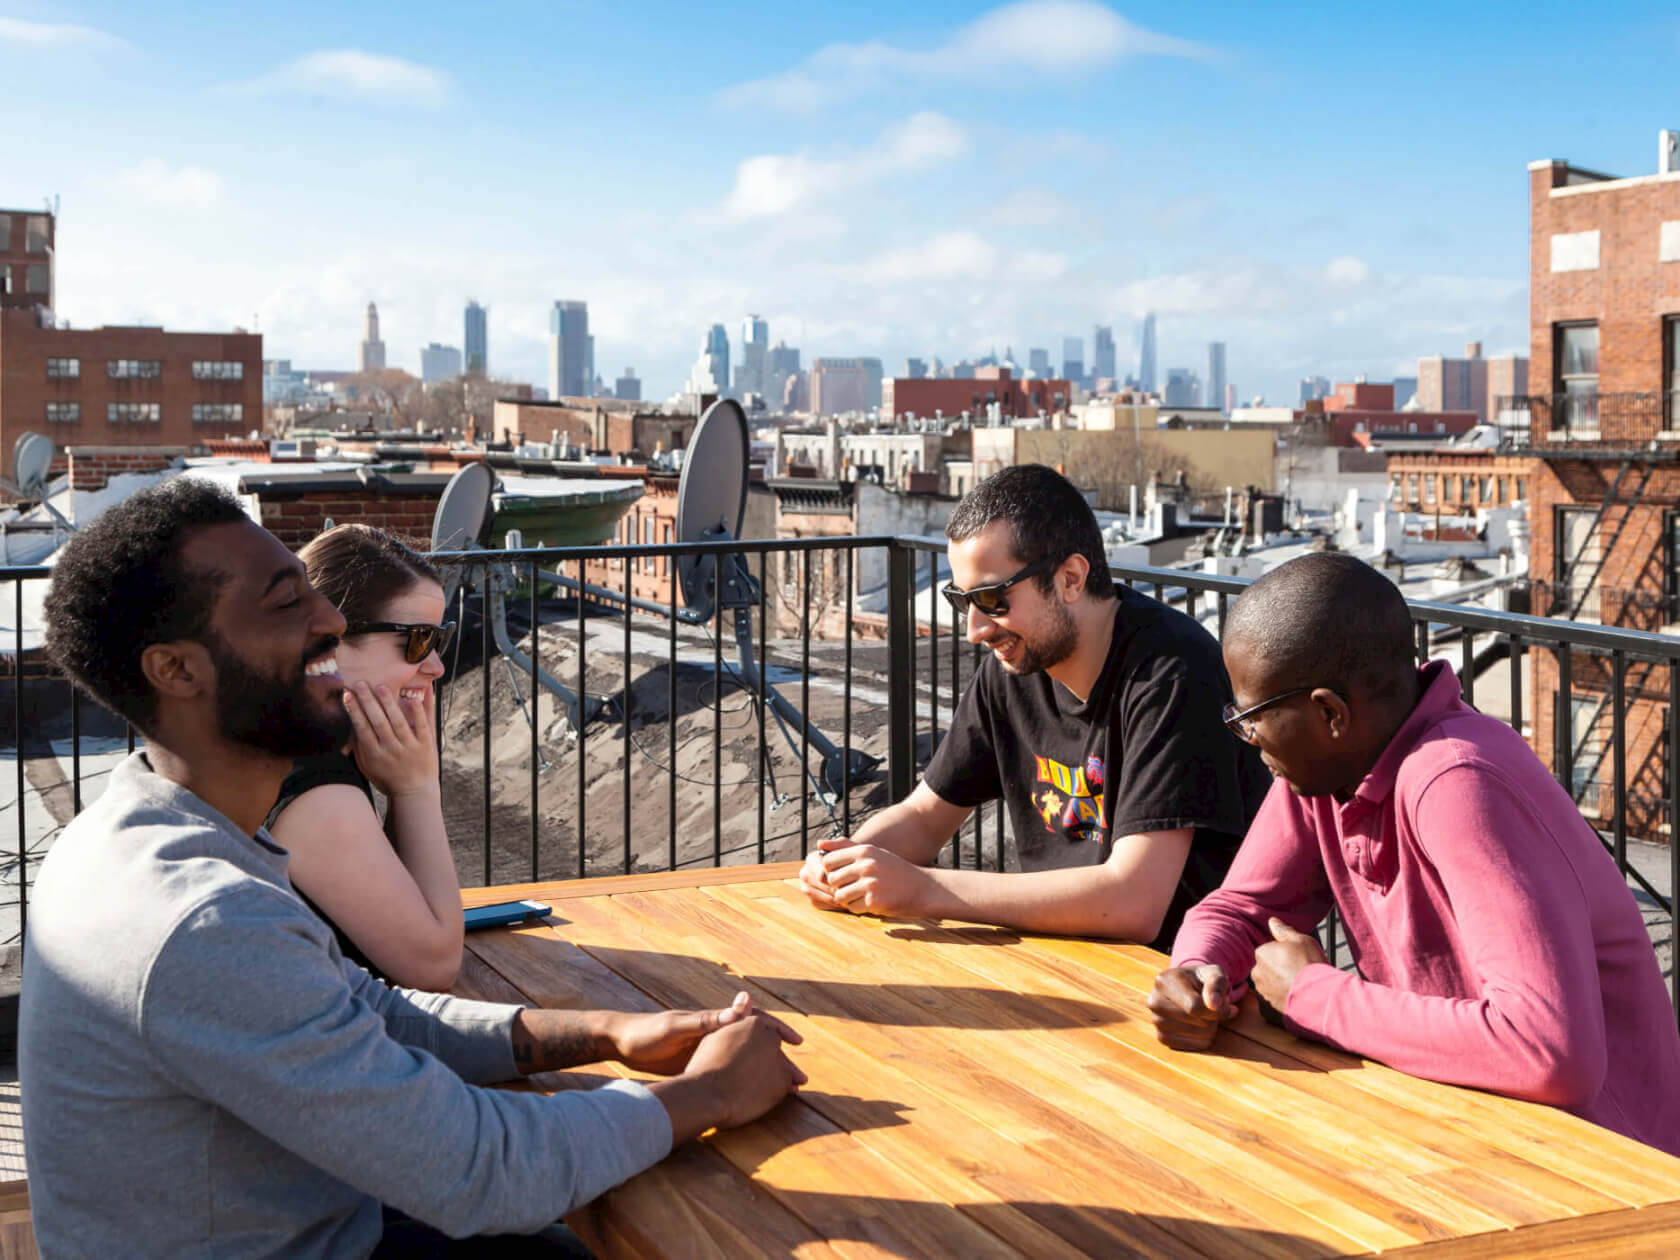 Members at Common Herkimer enjoy an afternoon on their private rooftop.